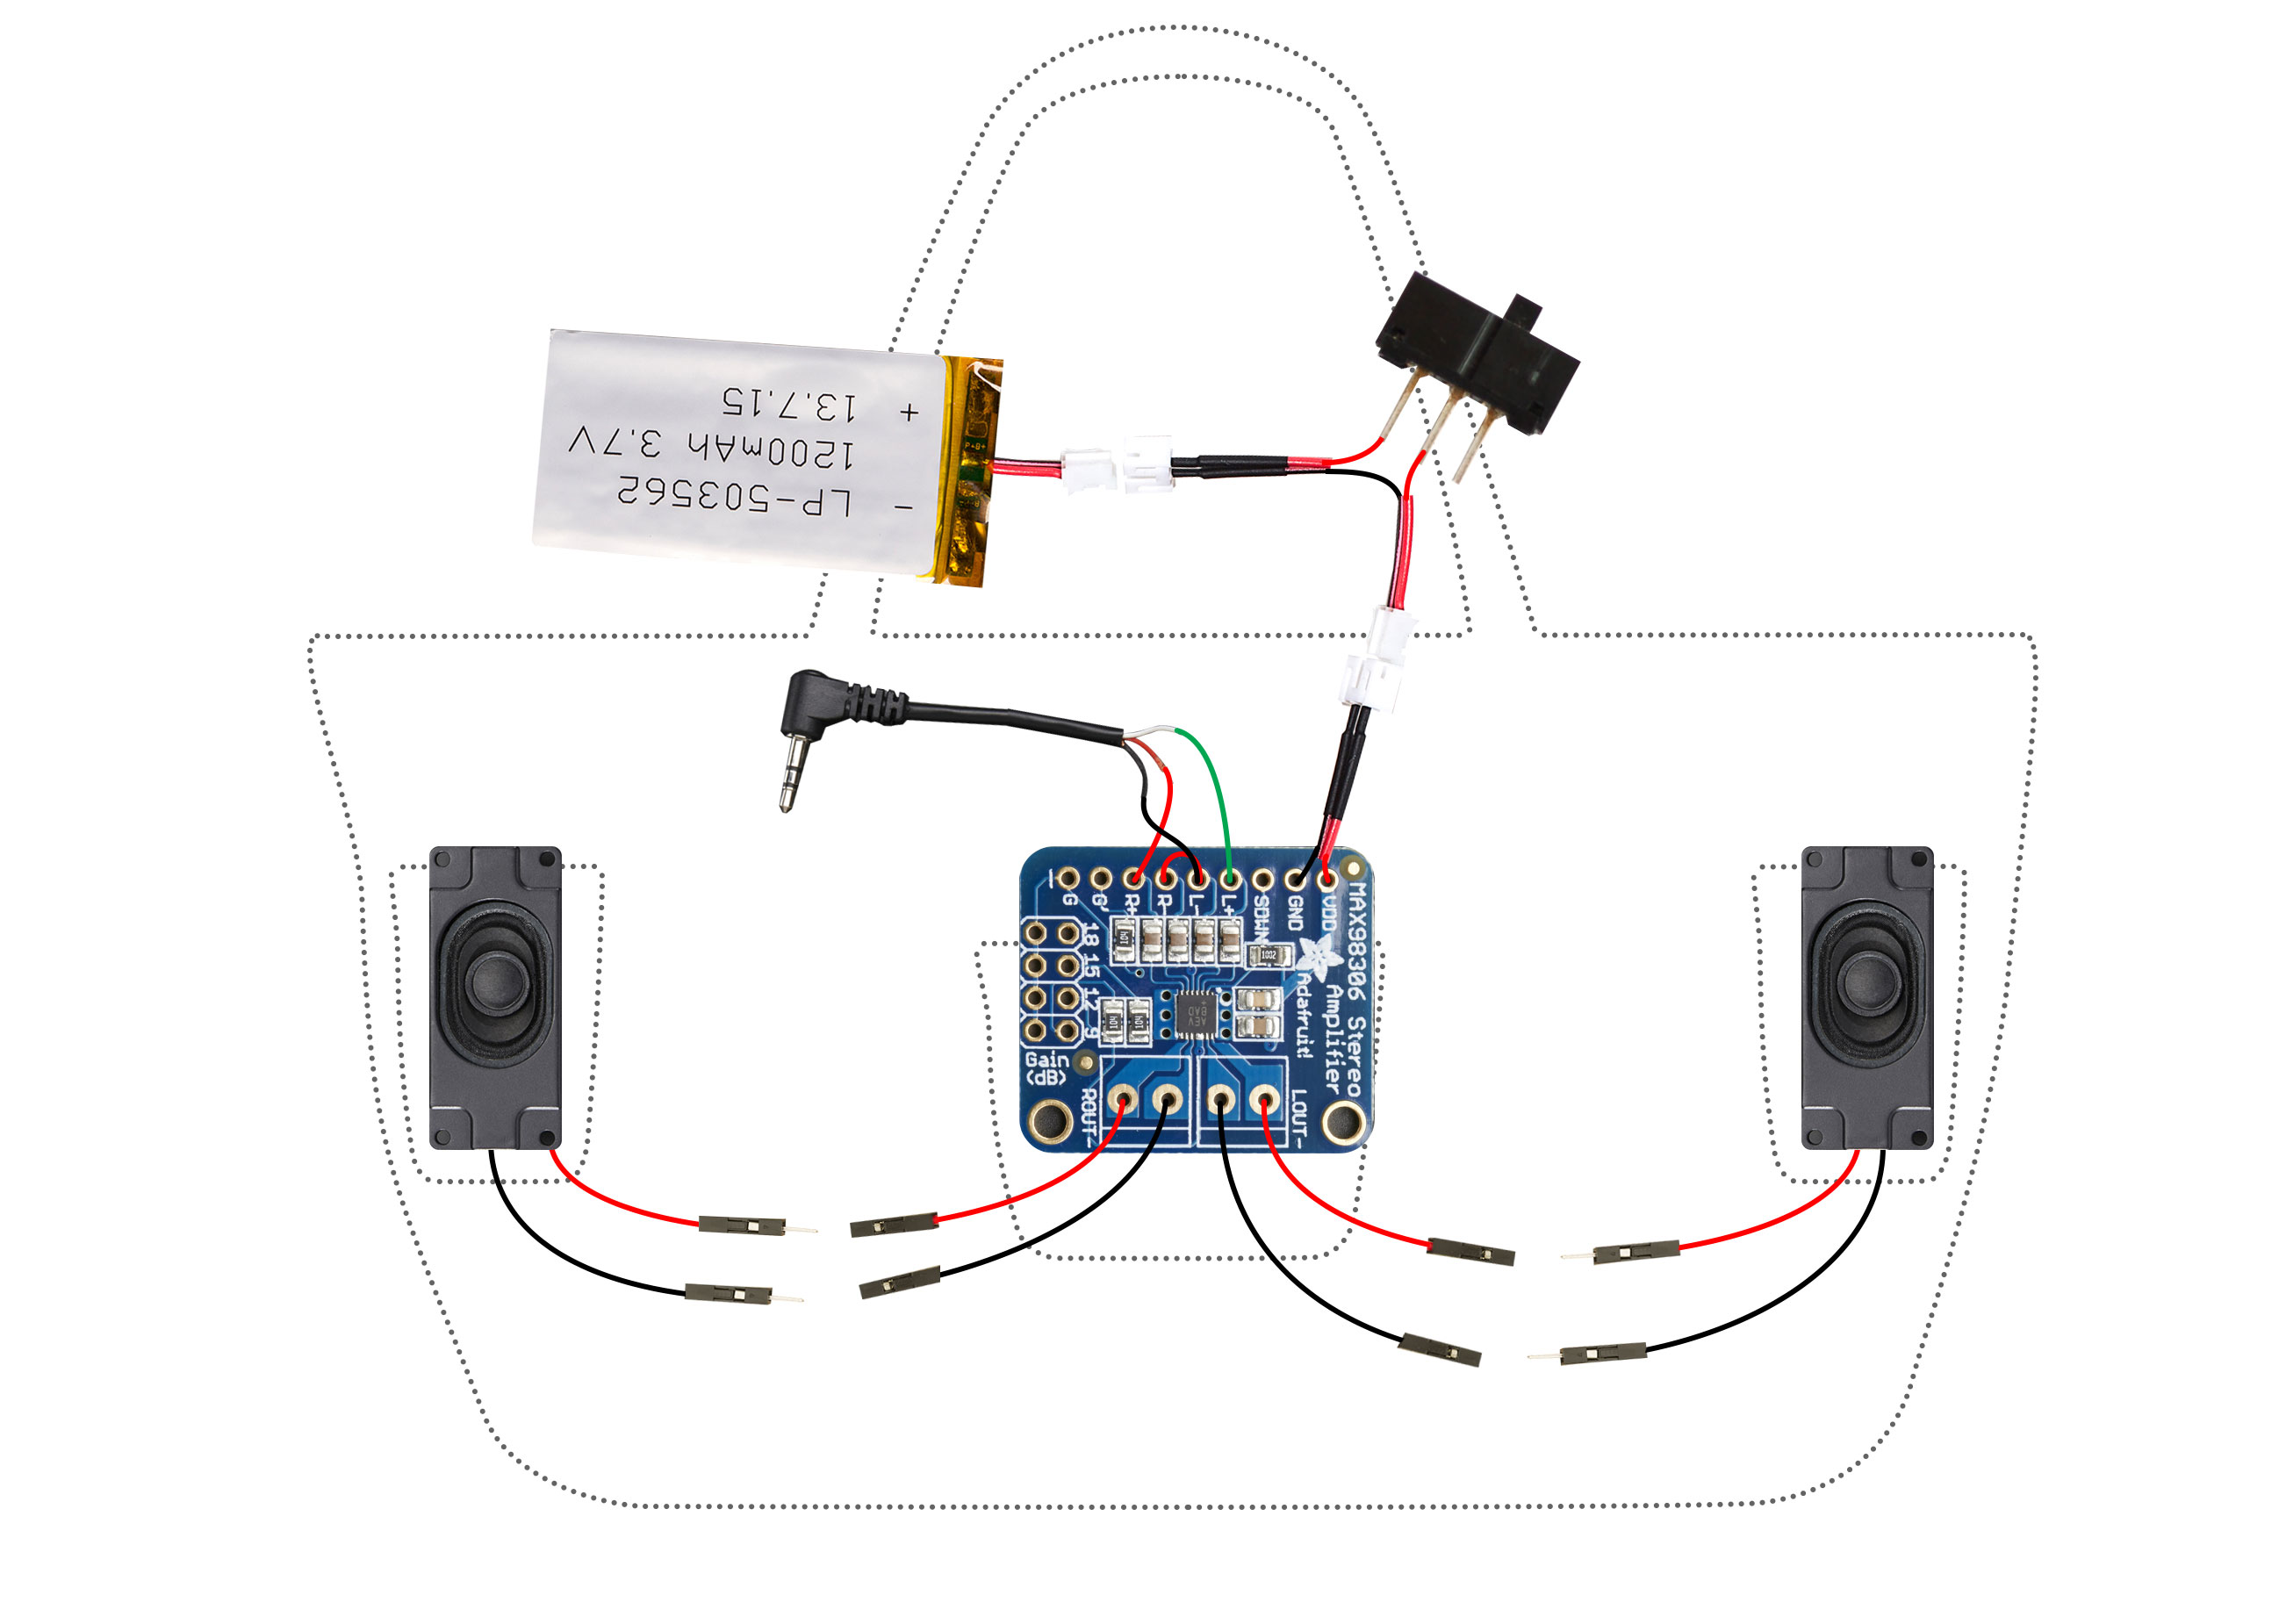 circuit diagram boombox beach bag with audio amp and speakers rh learn adafruit com Impedance Speaker Wiring Diagrams Series Speaker Wiring Diagram